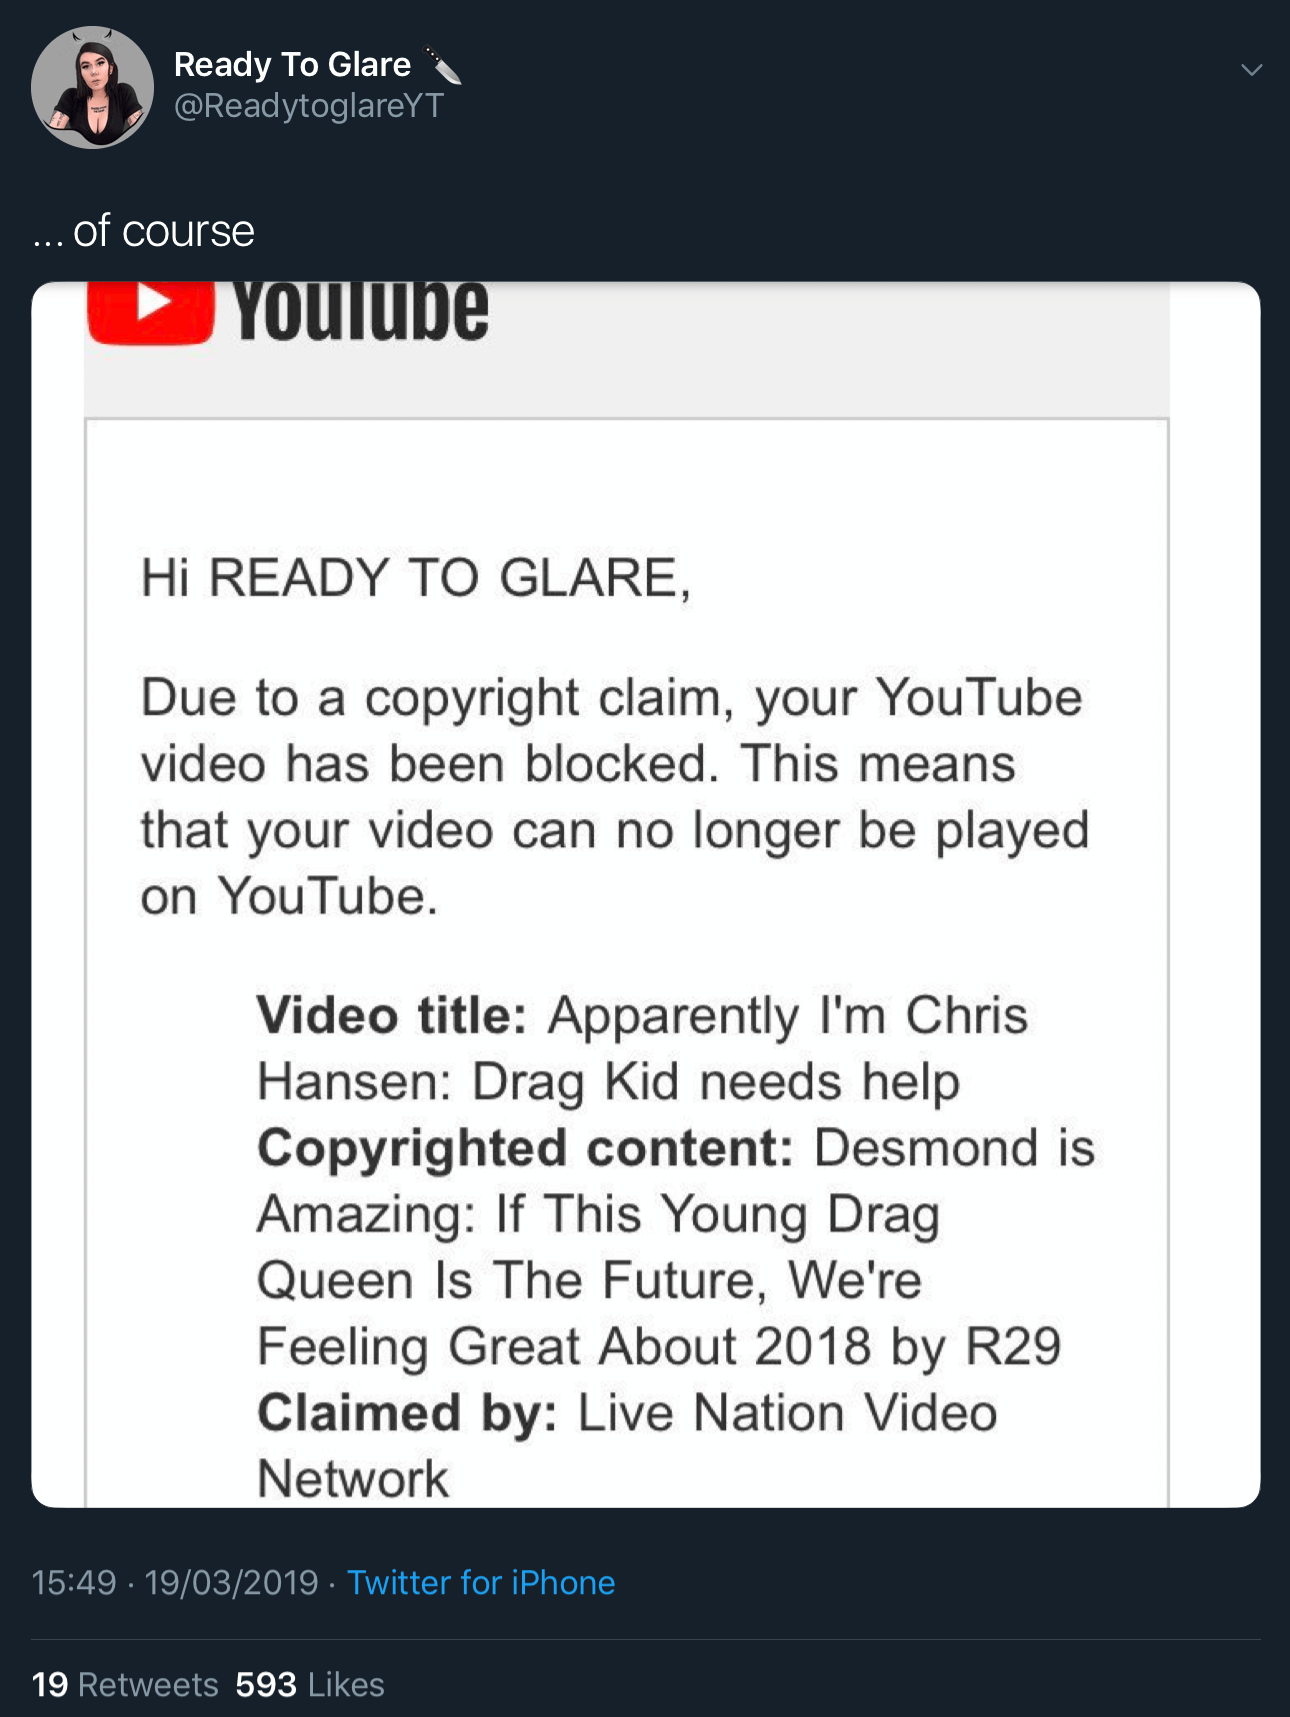 "A tweet showing the first fake YouTube copyright claim against Ready To Glare for her video titled ""Apparently I'm Chris Hanson: Drag Kid Needs Help."""